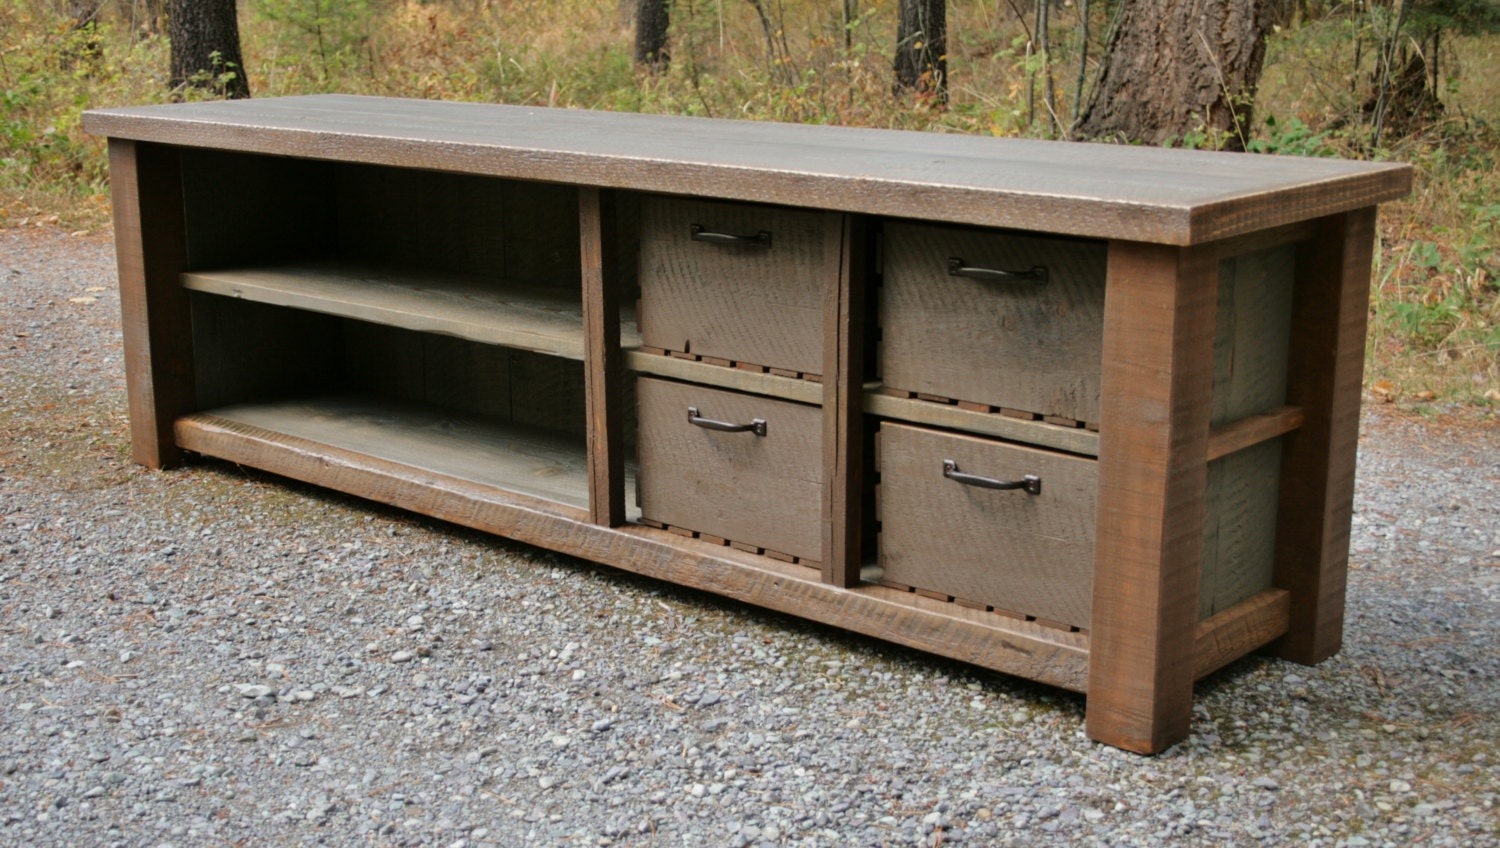 Rustic Reclaimed Entry Bench Stacked Cubbies By Echopeakdesign Etsy